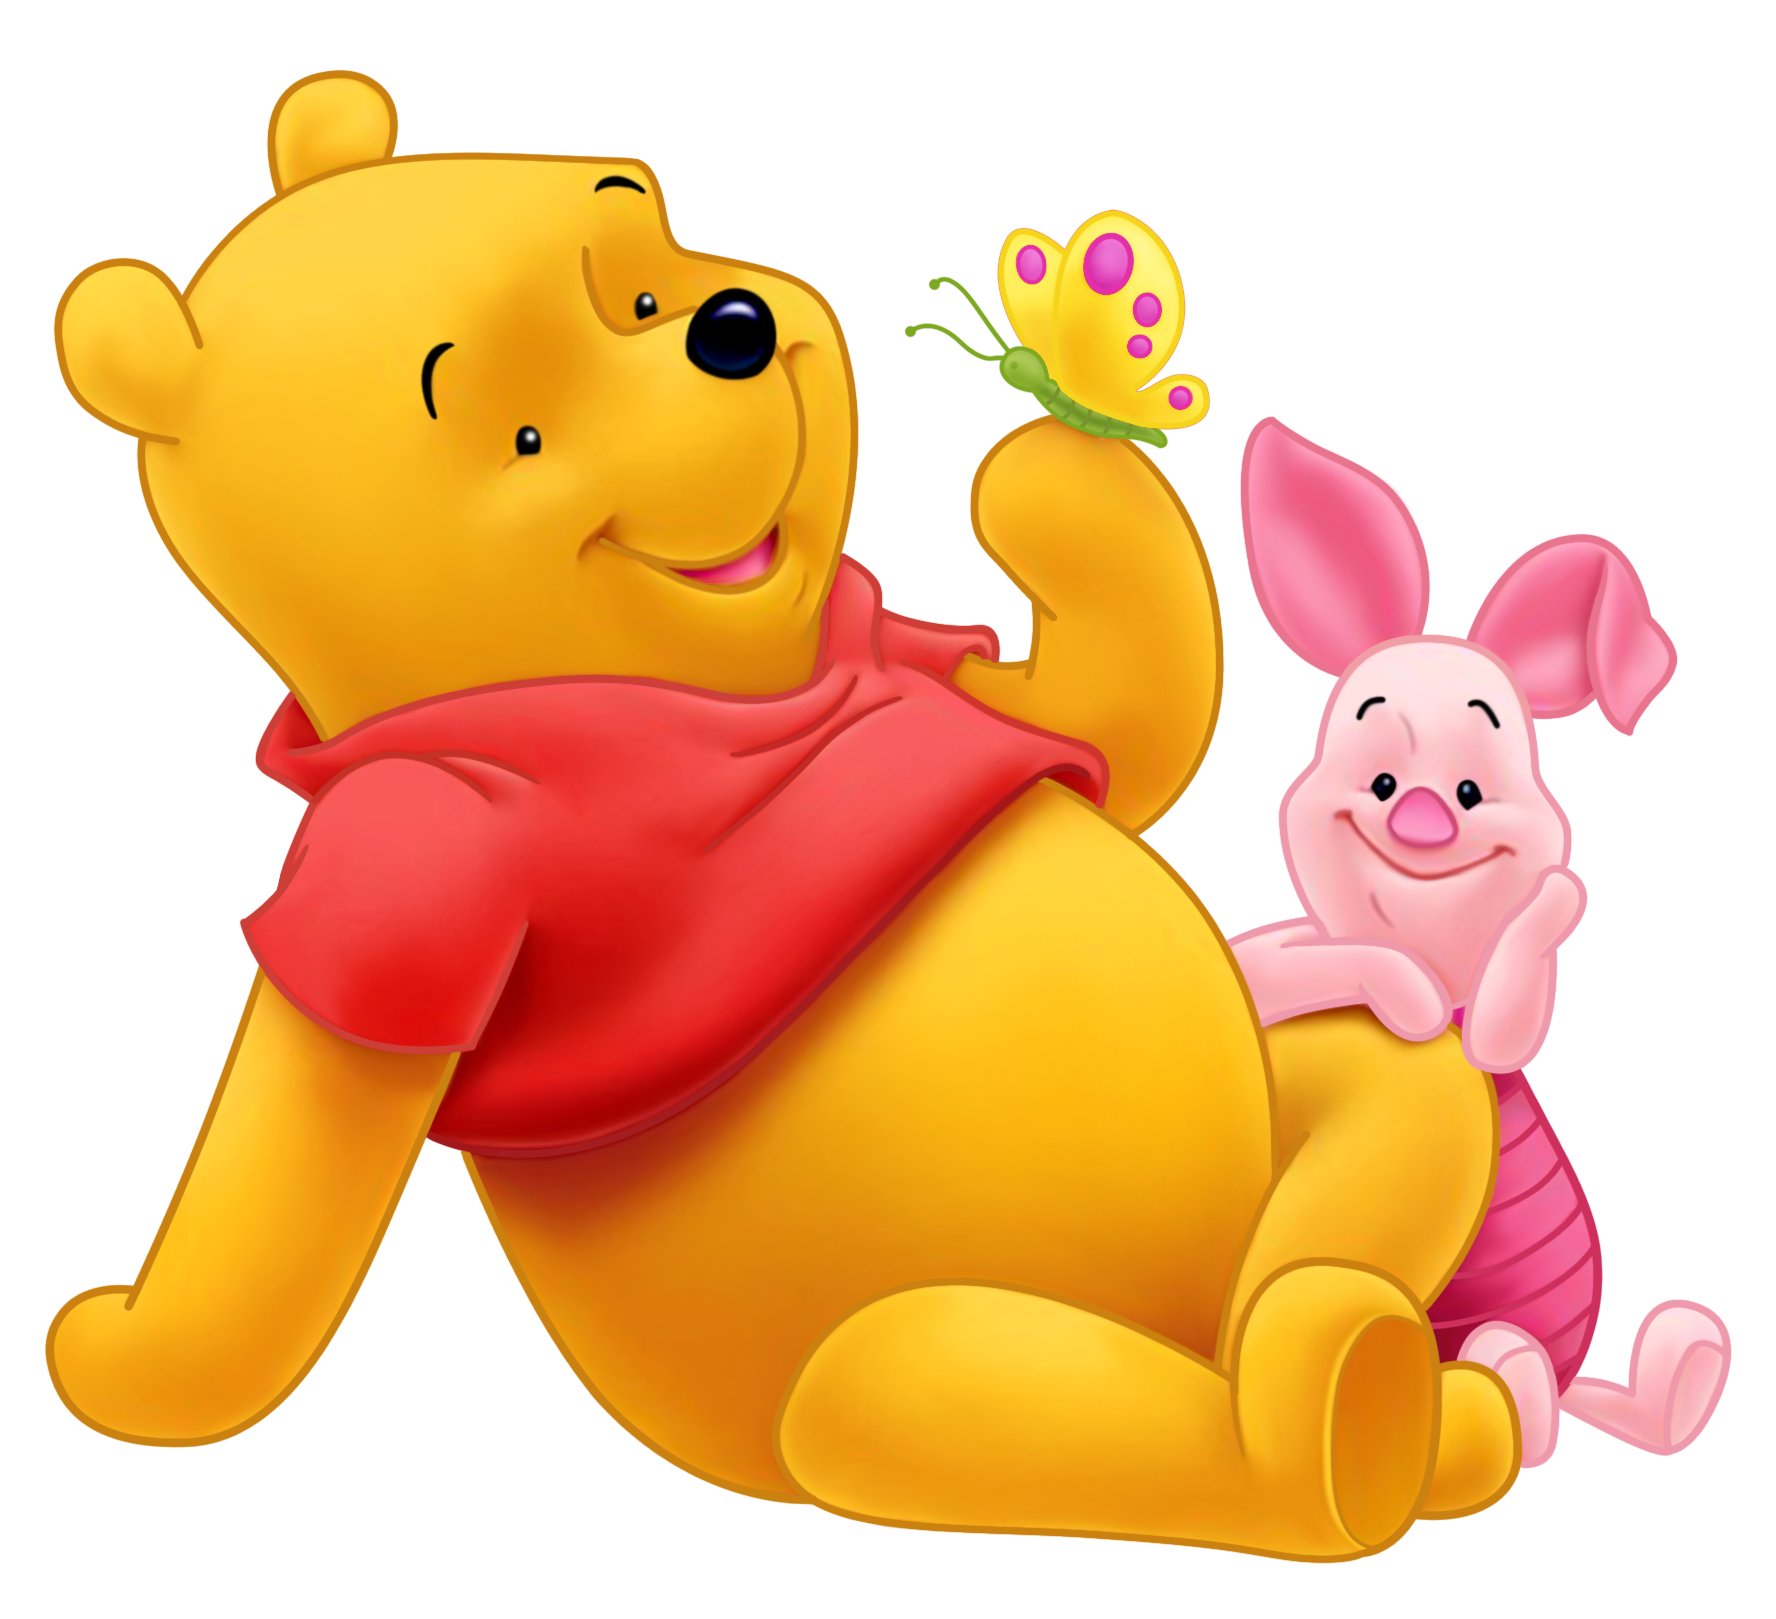 Winnie The Pooh And Piglet PNG Transparent Winnie The Pooh And.